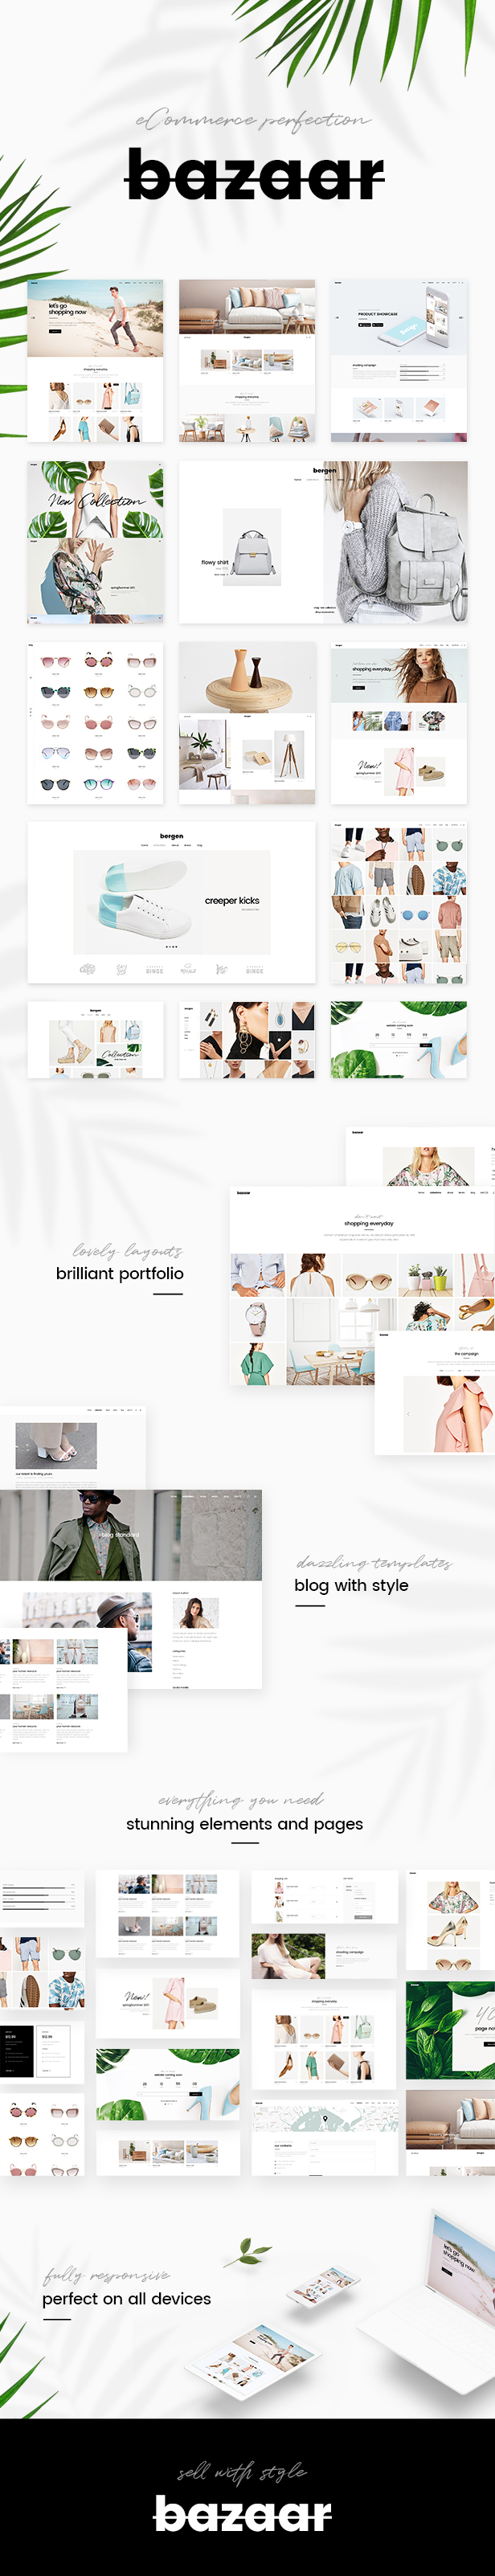 WordPress theme Bazaar - A Modern, Sharp eCommerce Theme (WooCommerce)